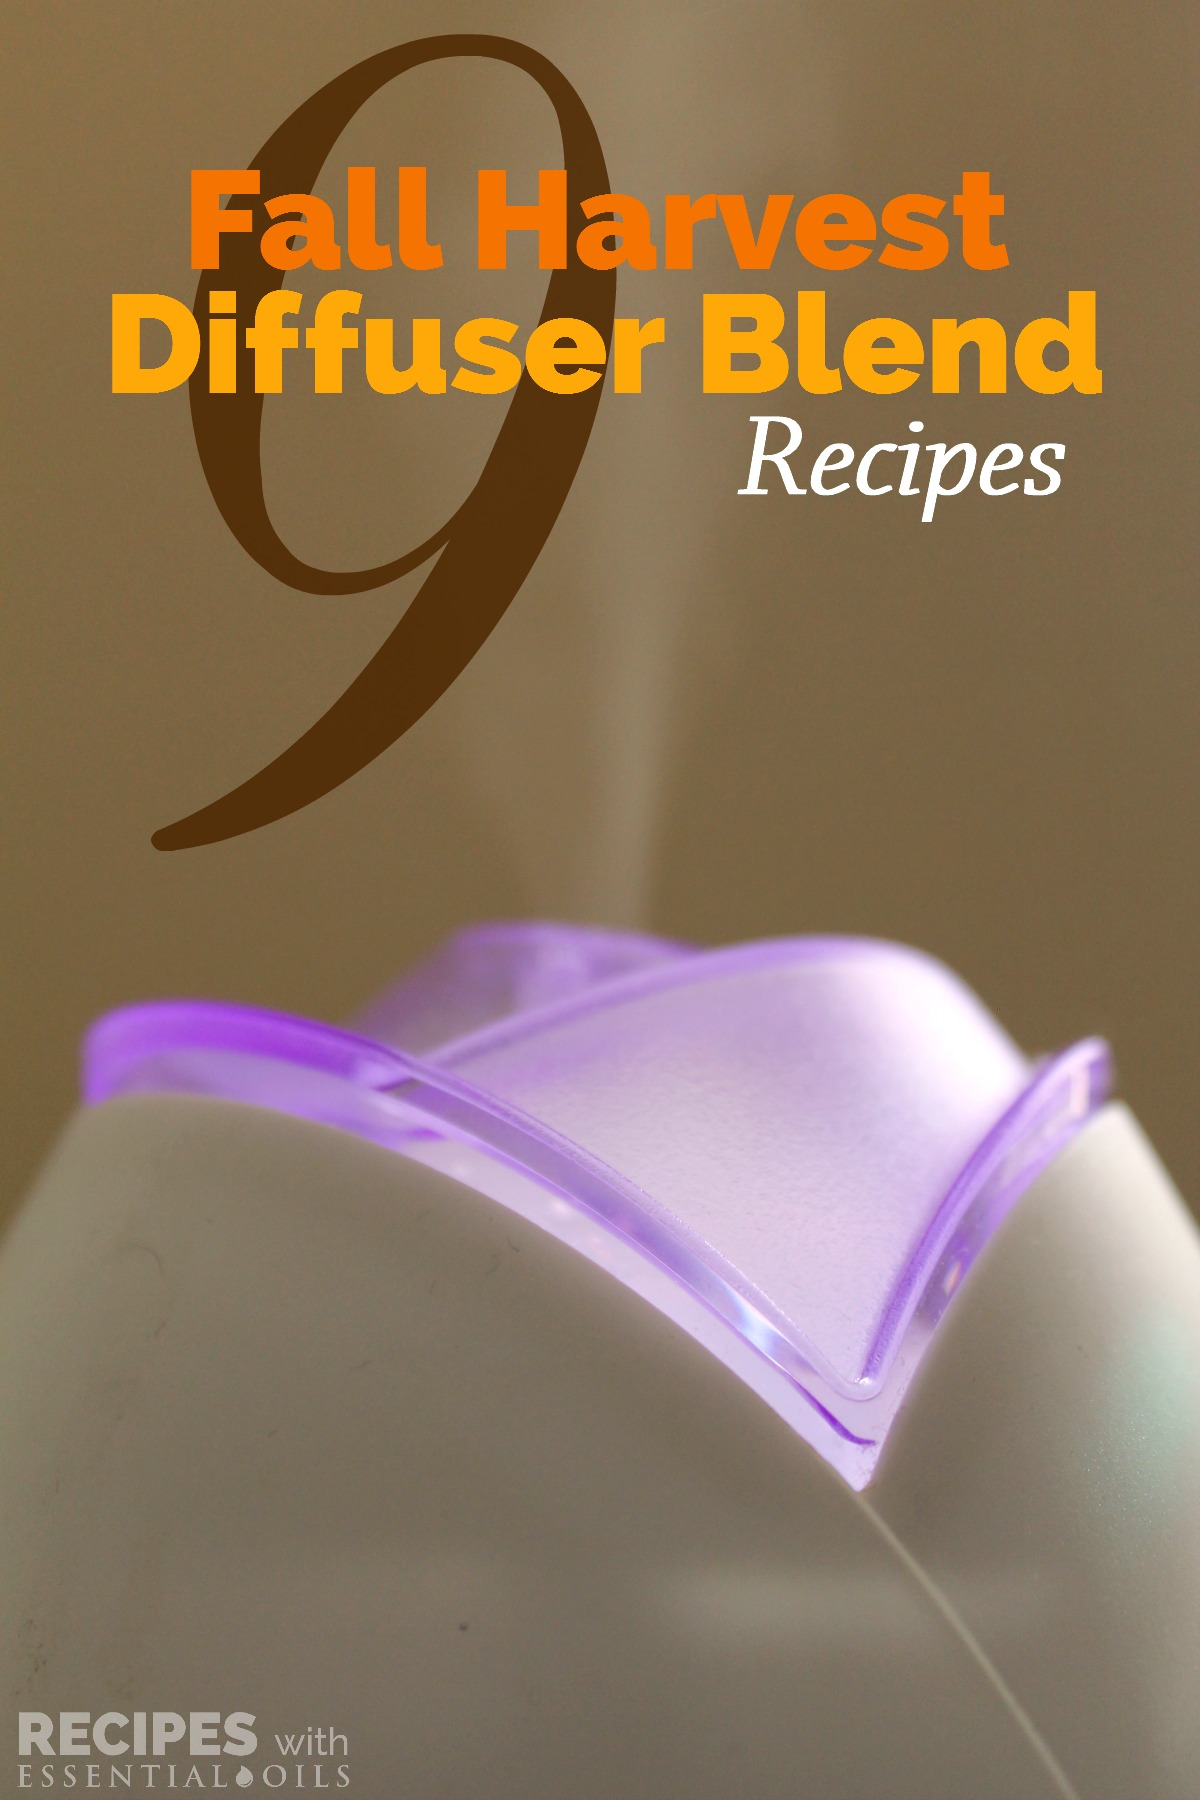 9 Fall Harvest Diffuser Blend Recipes from Recipes with Essential Oils